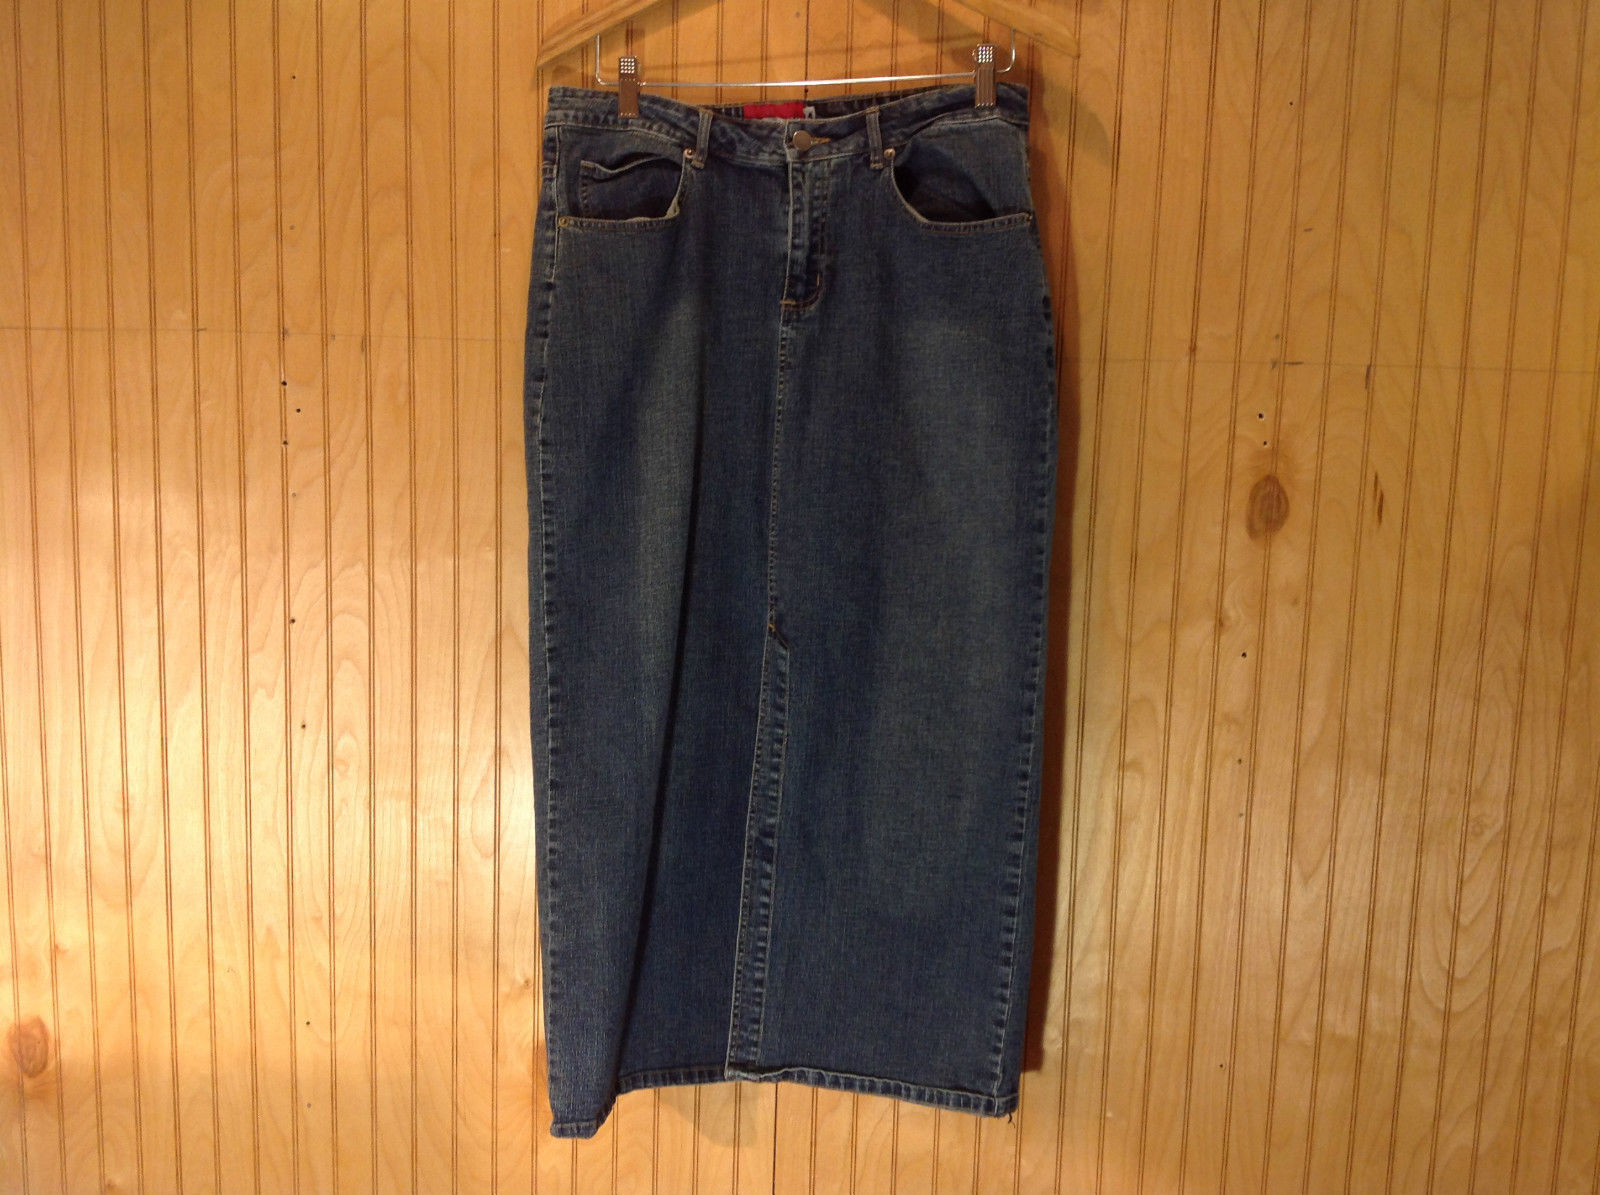 L A Blue Stretch Blue Denim Long Skirt Size 14 Button and Zipper Front Closure